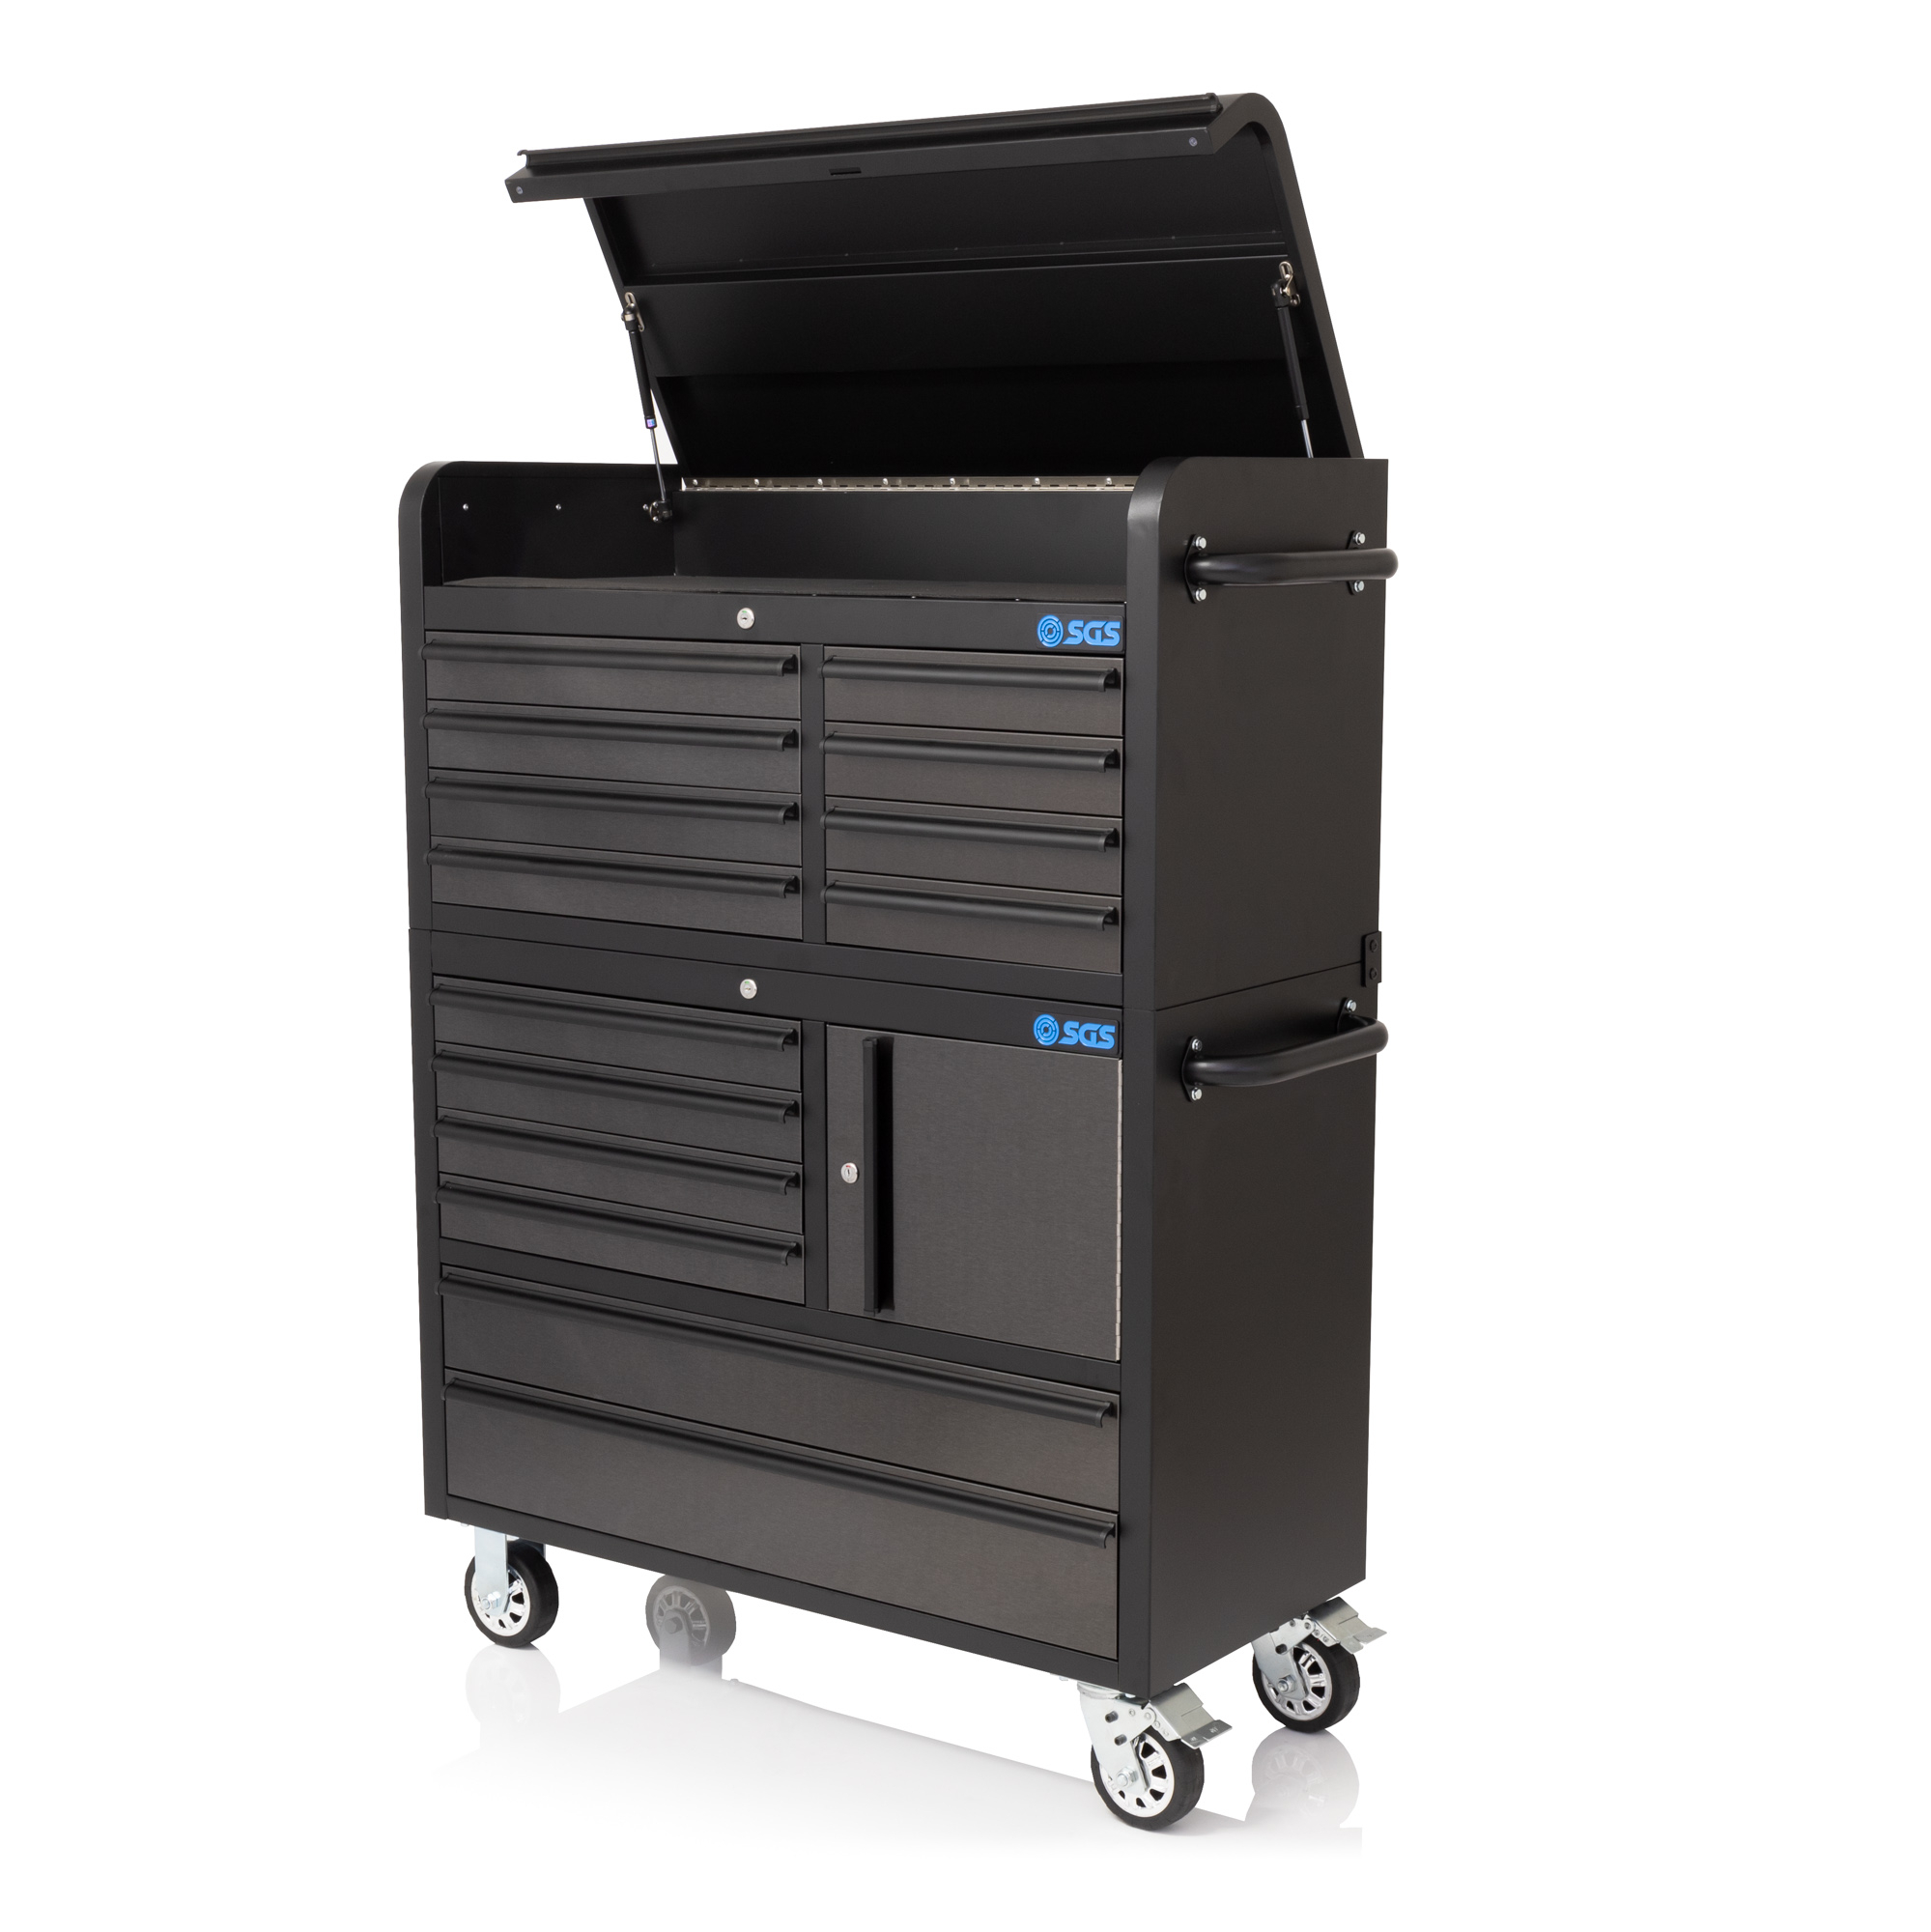 Workshop Storage Trolley Tool Box Cabinet Service Cart Tool Chest with 14 Drawer